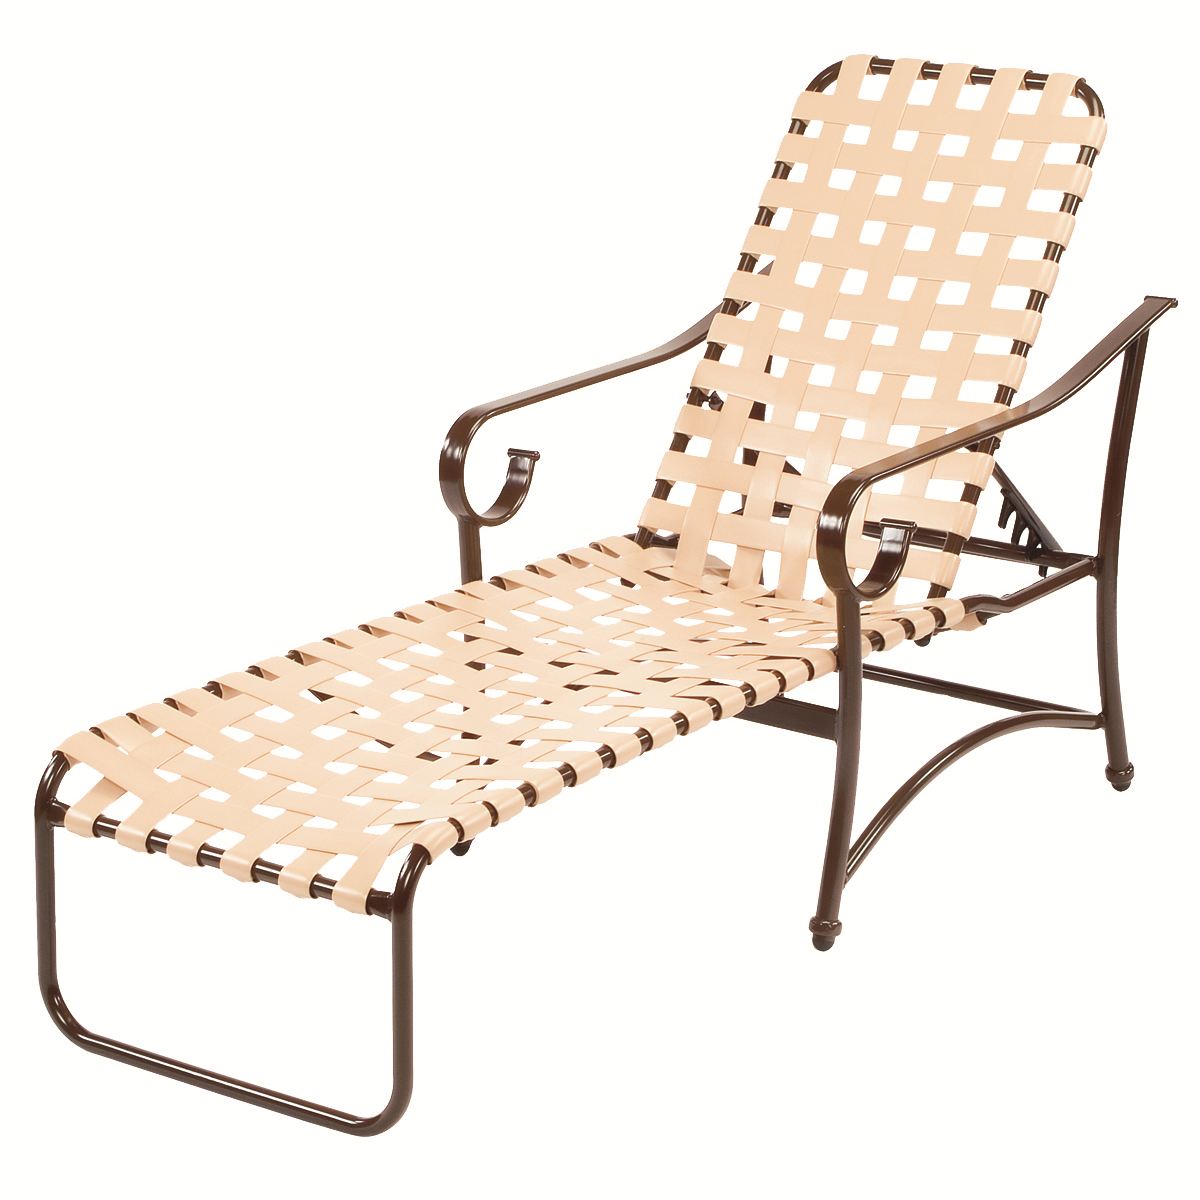 ... Vinyl Strap Chaise Lounge Chair W/ Arms. More Images